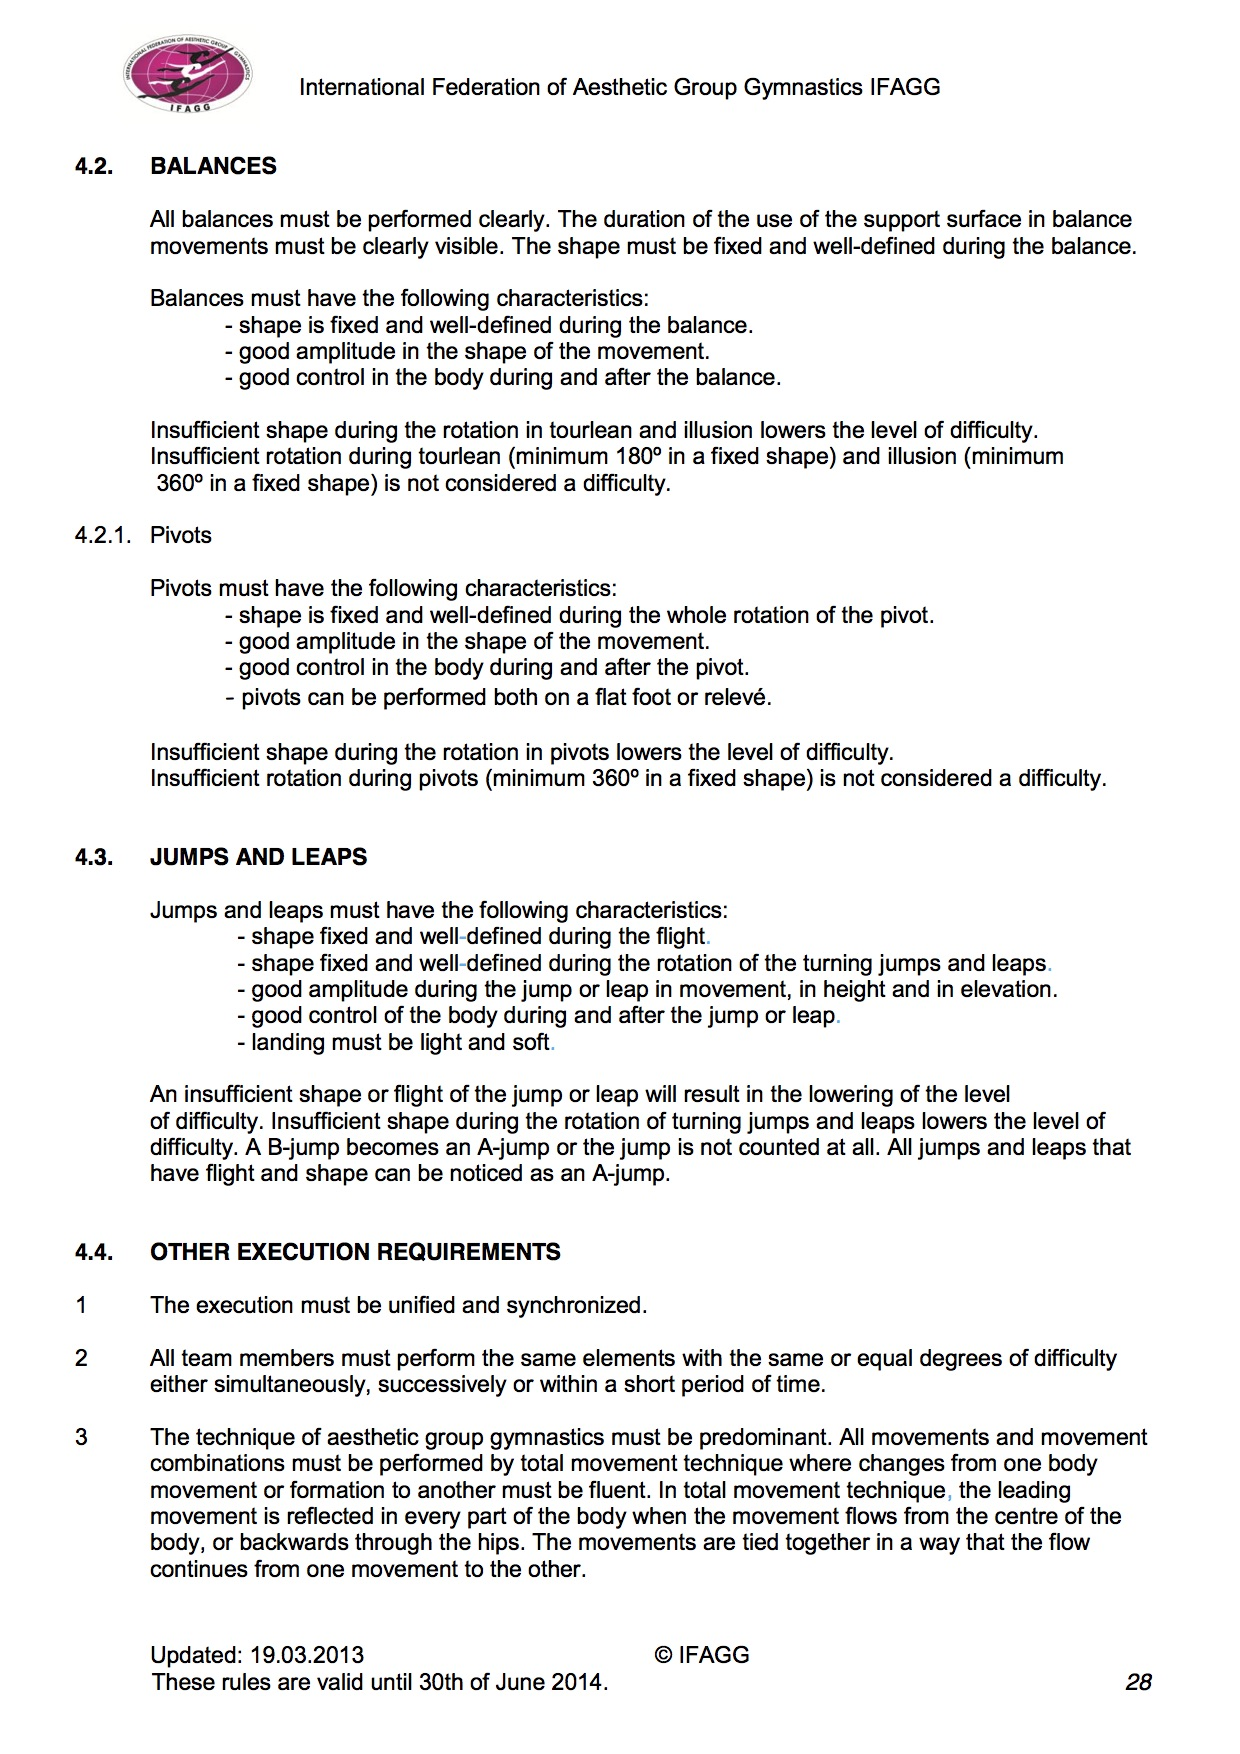 IFAGG Competition rules28.jpg